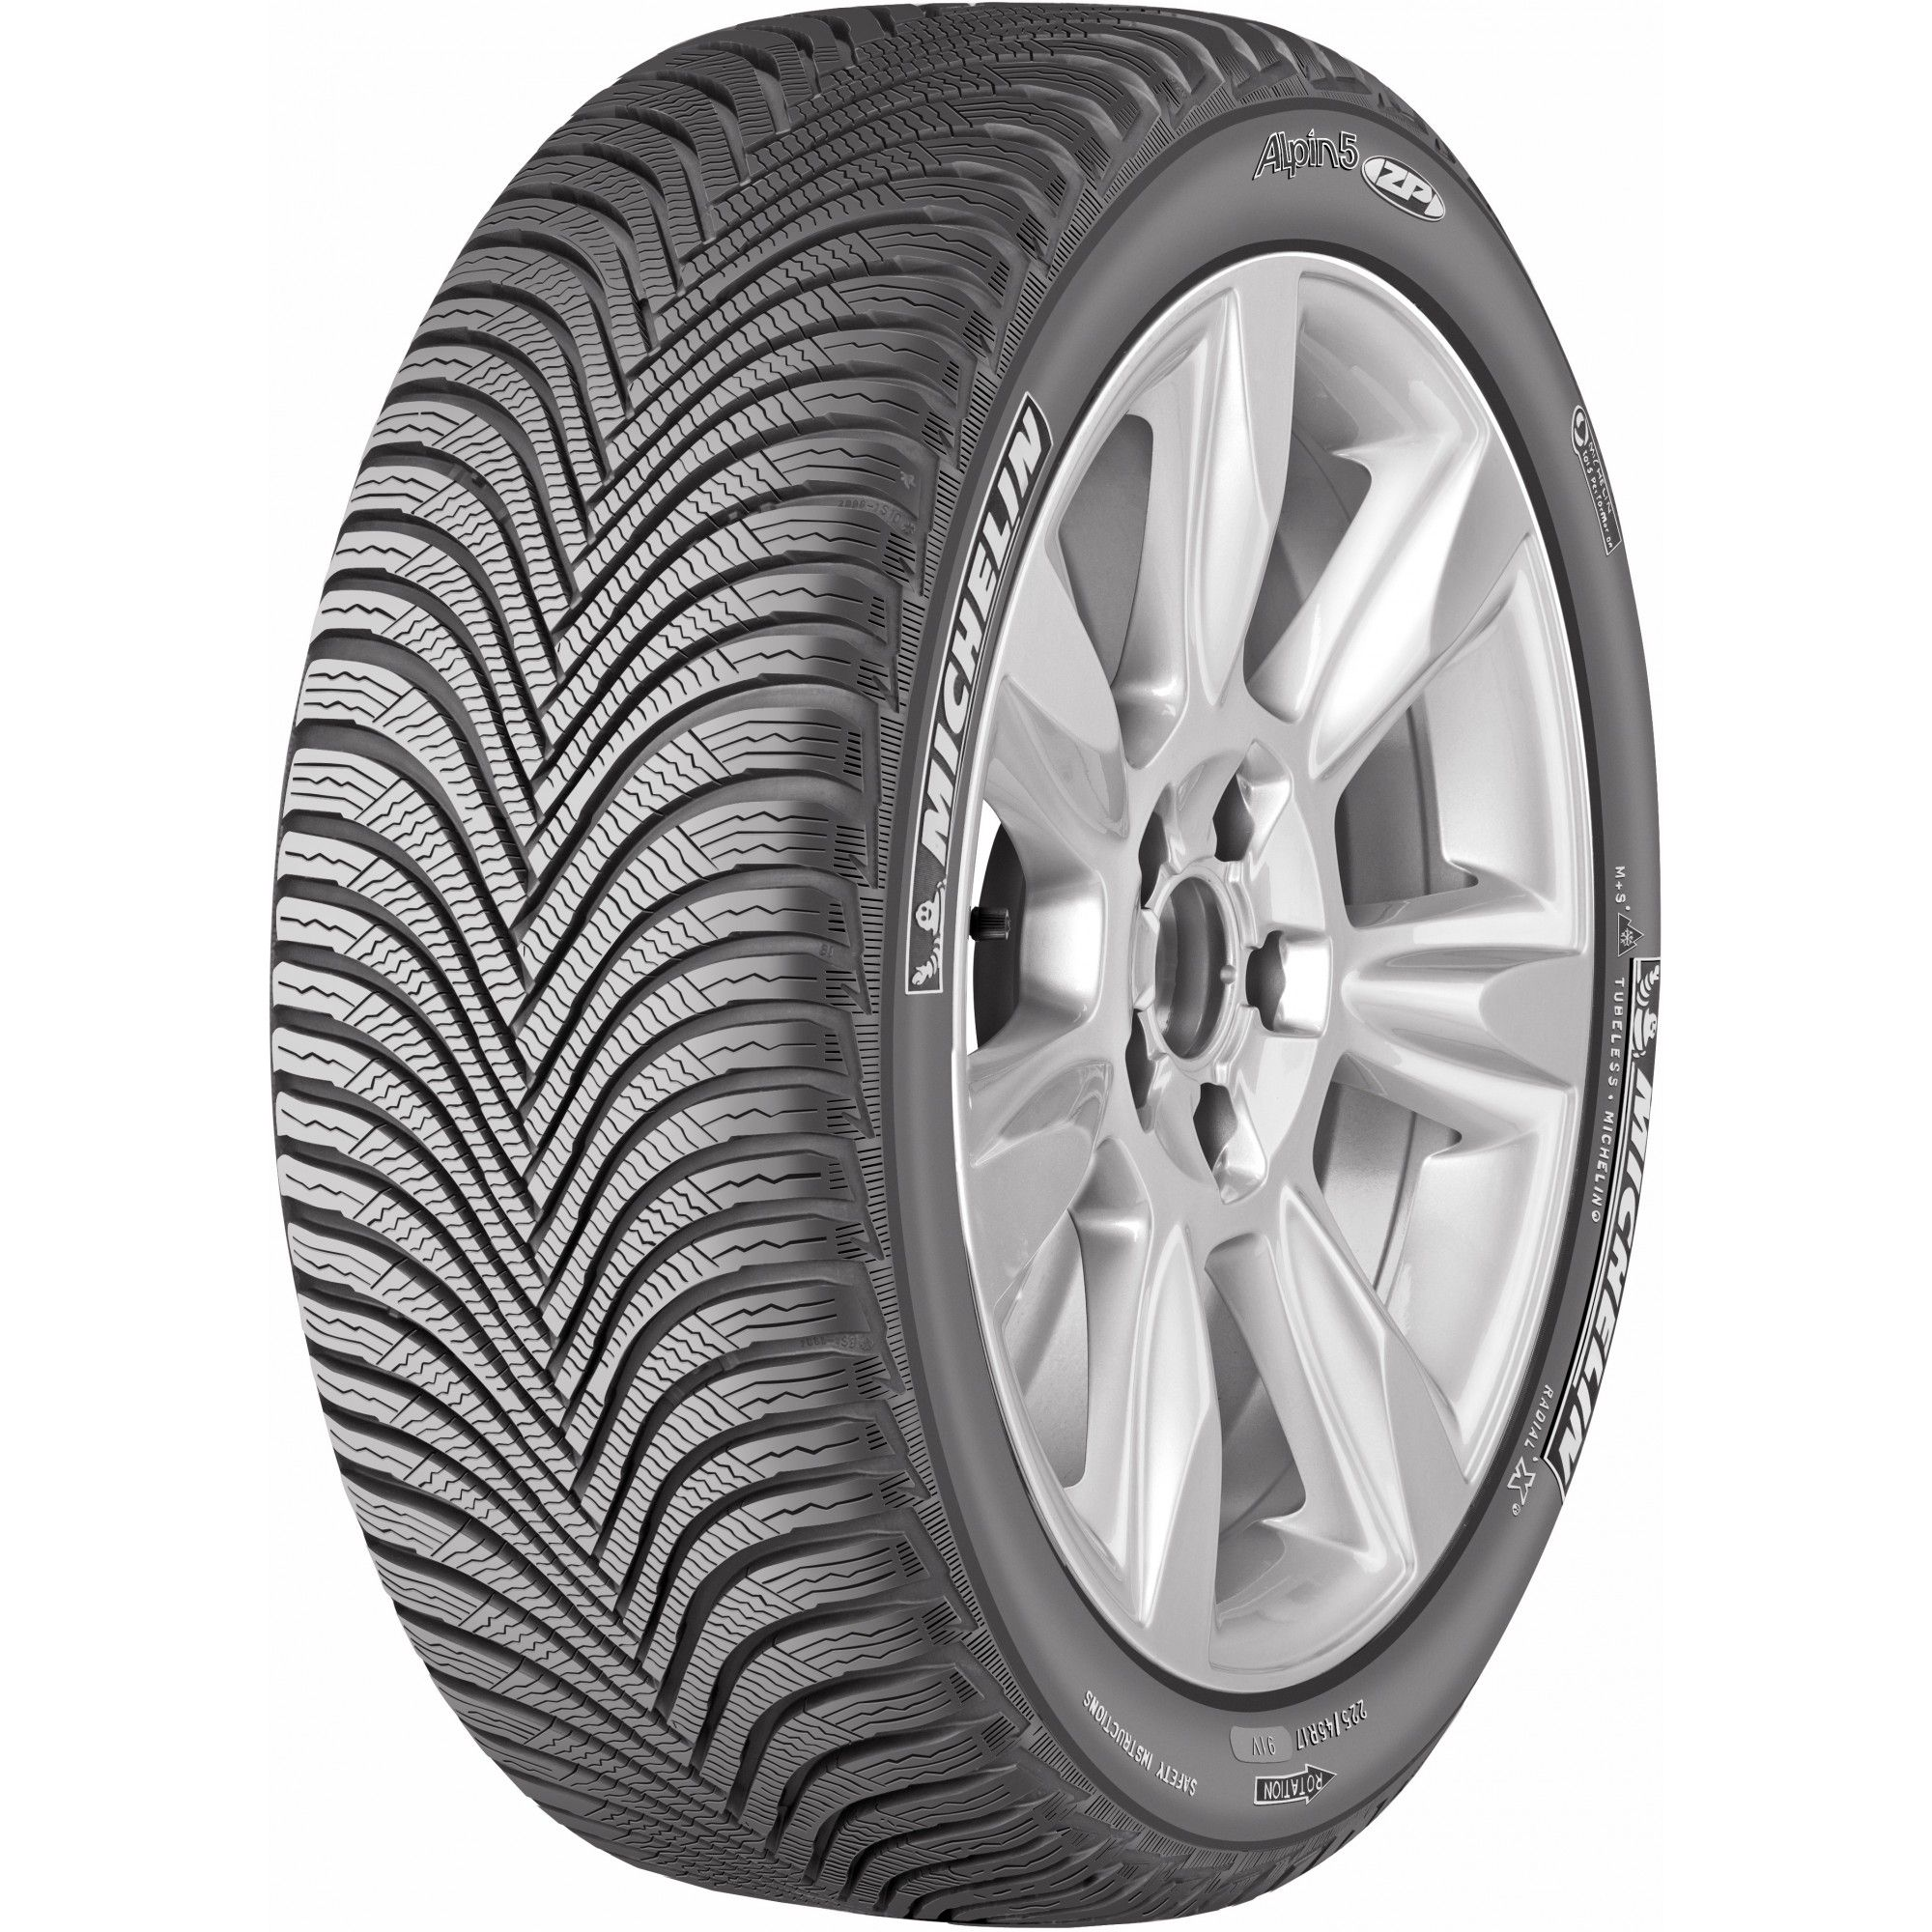 Зимняя шина Michelin Alpin 5 215/50 R17 95H